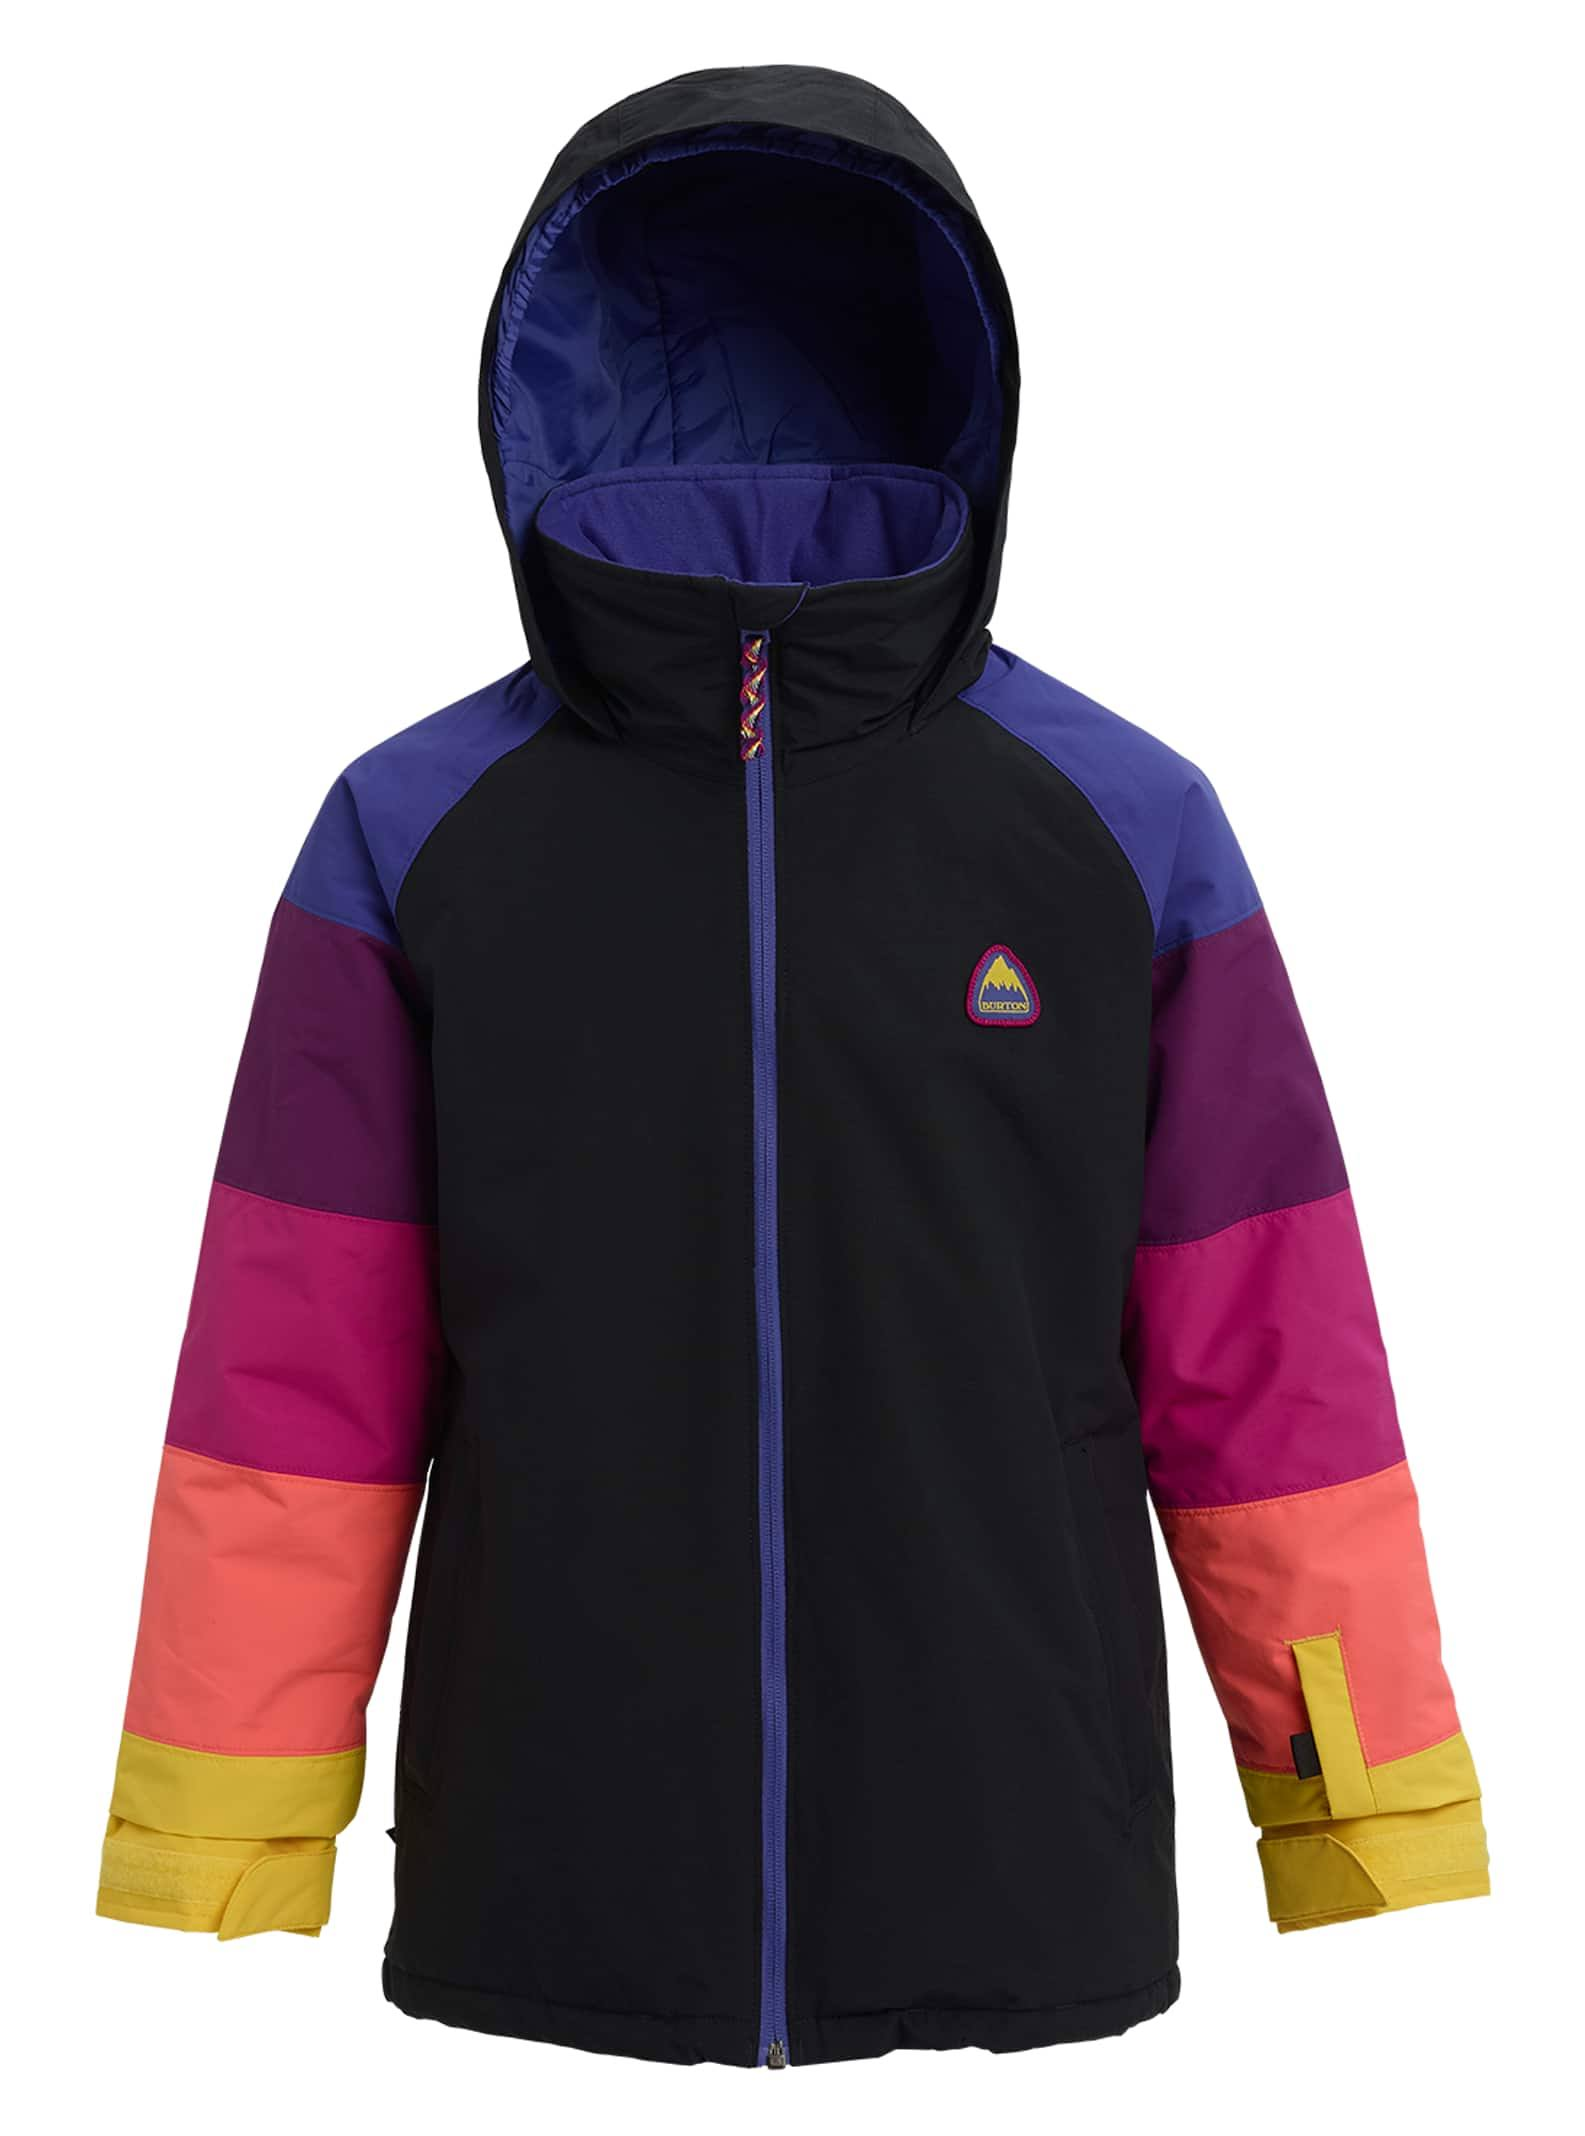 Burton Kids Hart Jacket - True Black/Multi, Small